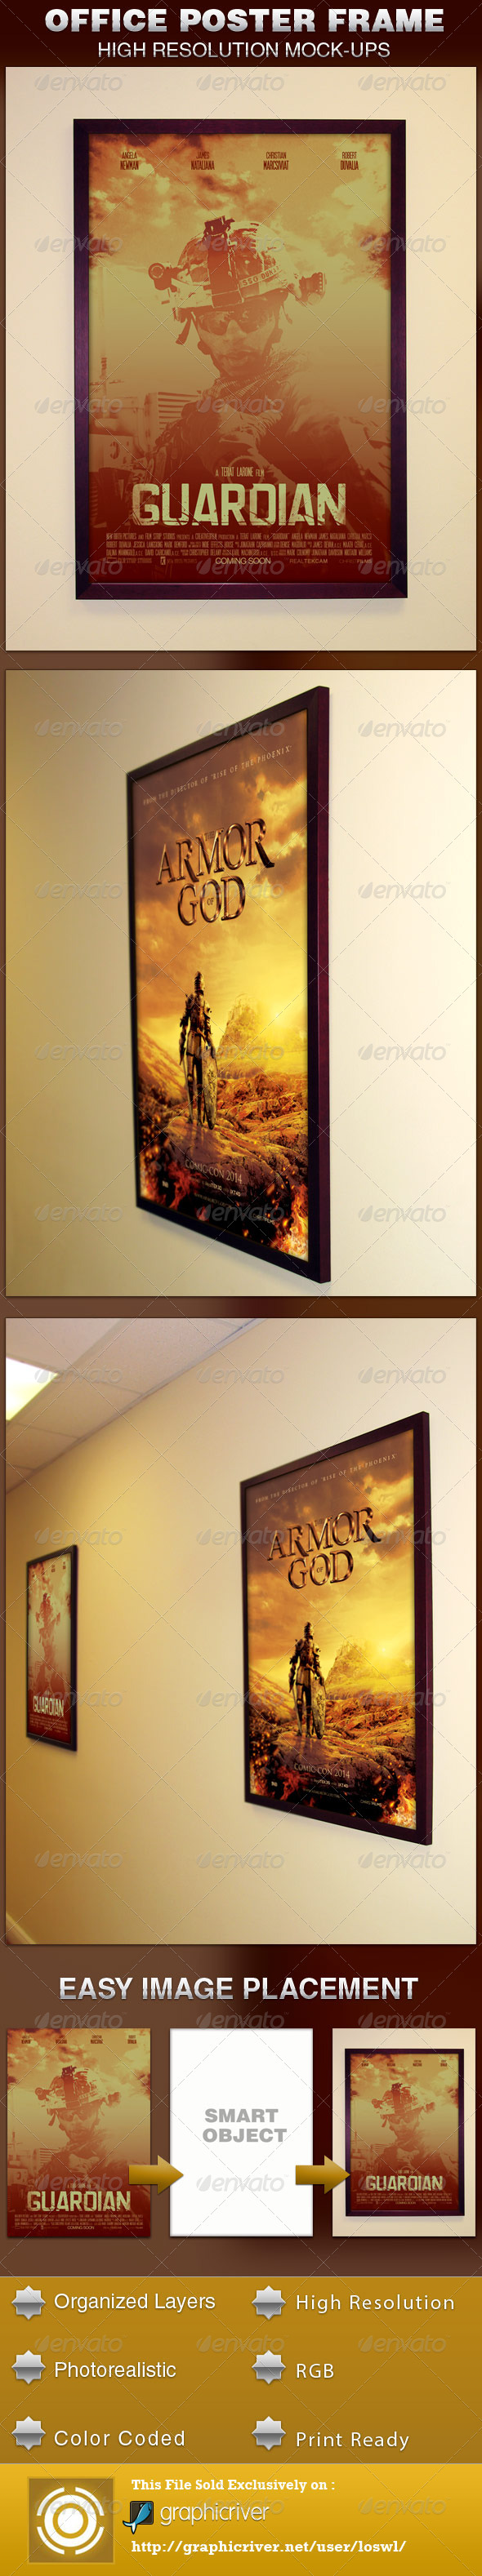 Office Frame Poster Mockup Template - Posters Print